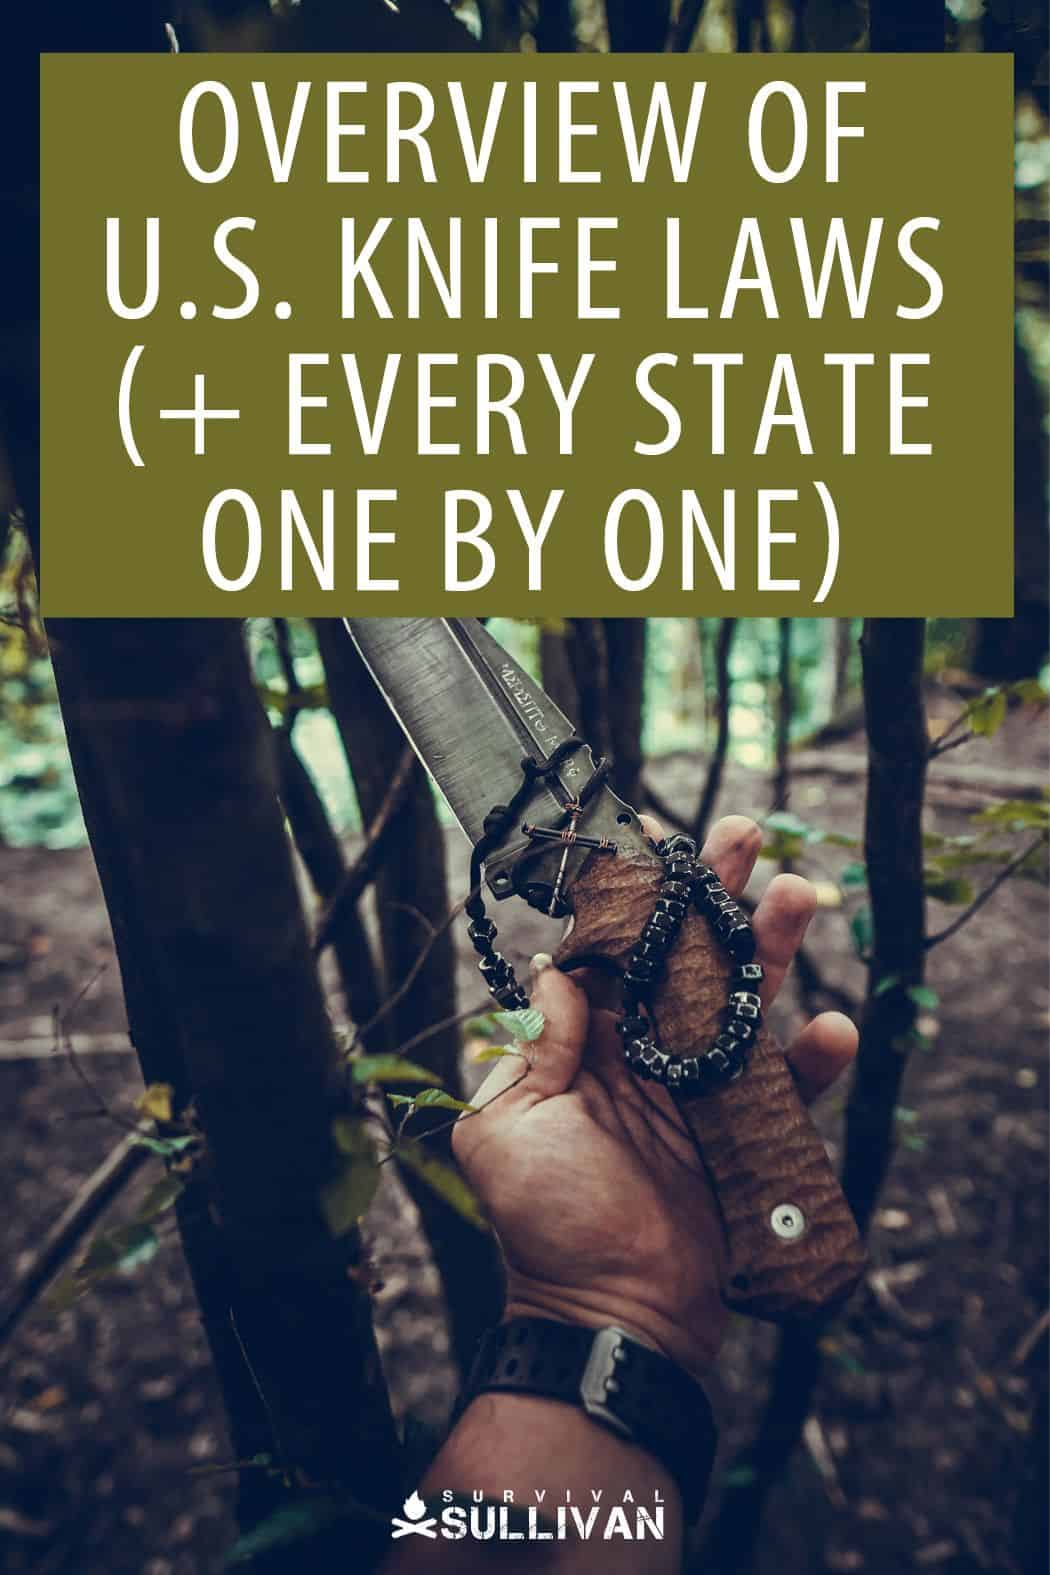 U.S. knife laws overview